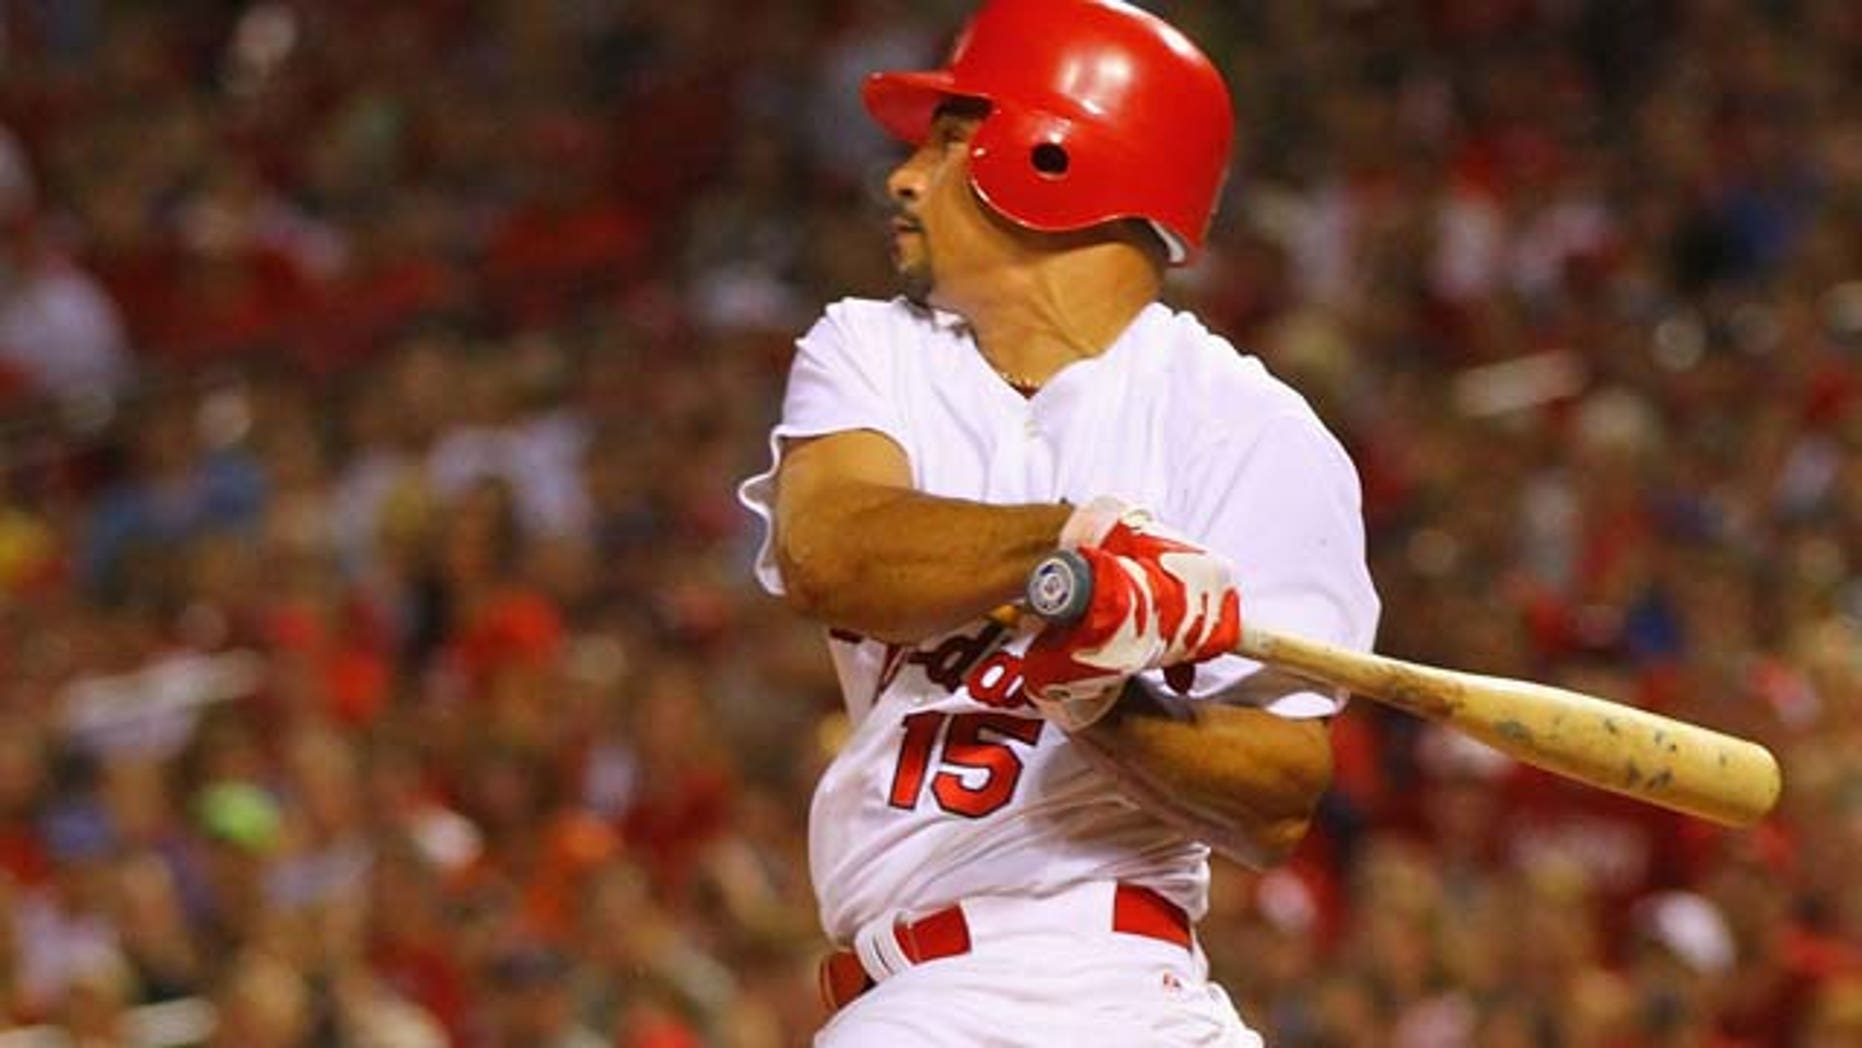 ST. LOUIS, MO - JULY 31: Newly acquired shortstop Rafael Furcal #15 of the St. Louis Cardinals pinch hits against the Chicago Cubs at Busch Stadium on July 31, 2011 in St. Louis, Missouri.  The Cubs beat the Cardinals 6-3.  (Photo by Dilip Vishwanat/Getty Images)